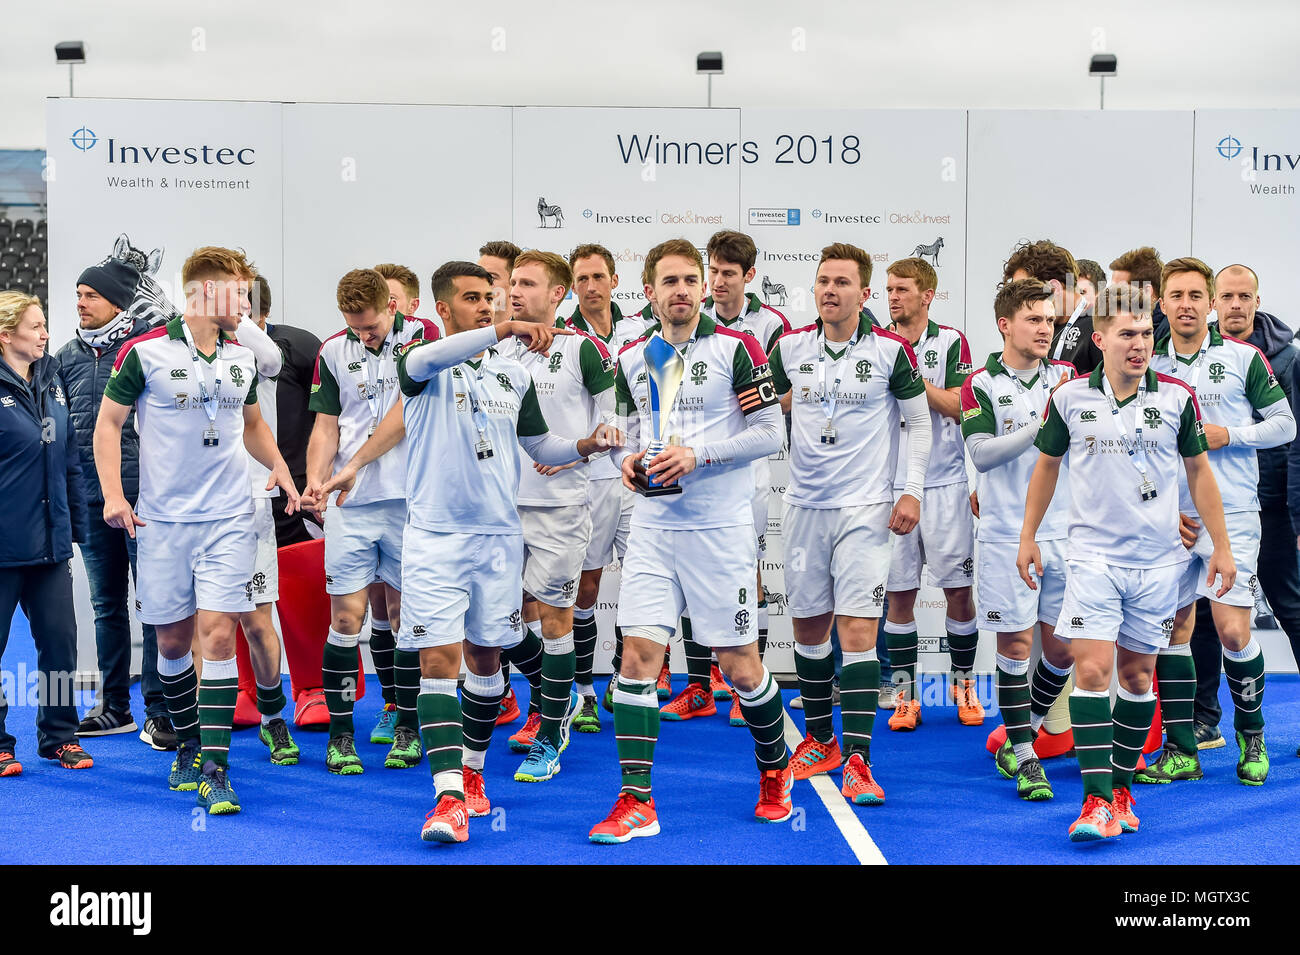 London, UK. 29 April 2018. Surbiton team celebrate after winning the England League during MHL Final between Hampstead & Westminster and Surbiton of the 2018 England Hockey League Final on Sunday, 29 April 2018. London, England. Credit: Taka G Wu Credit: Taka Wu/Alamy Live News - Stock Image